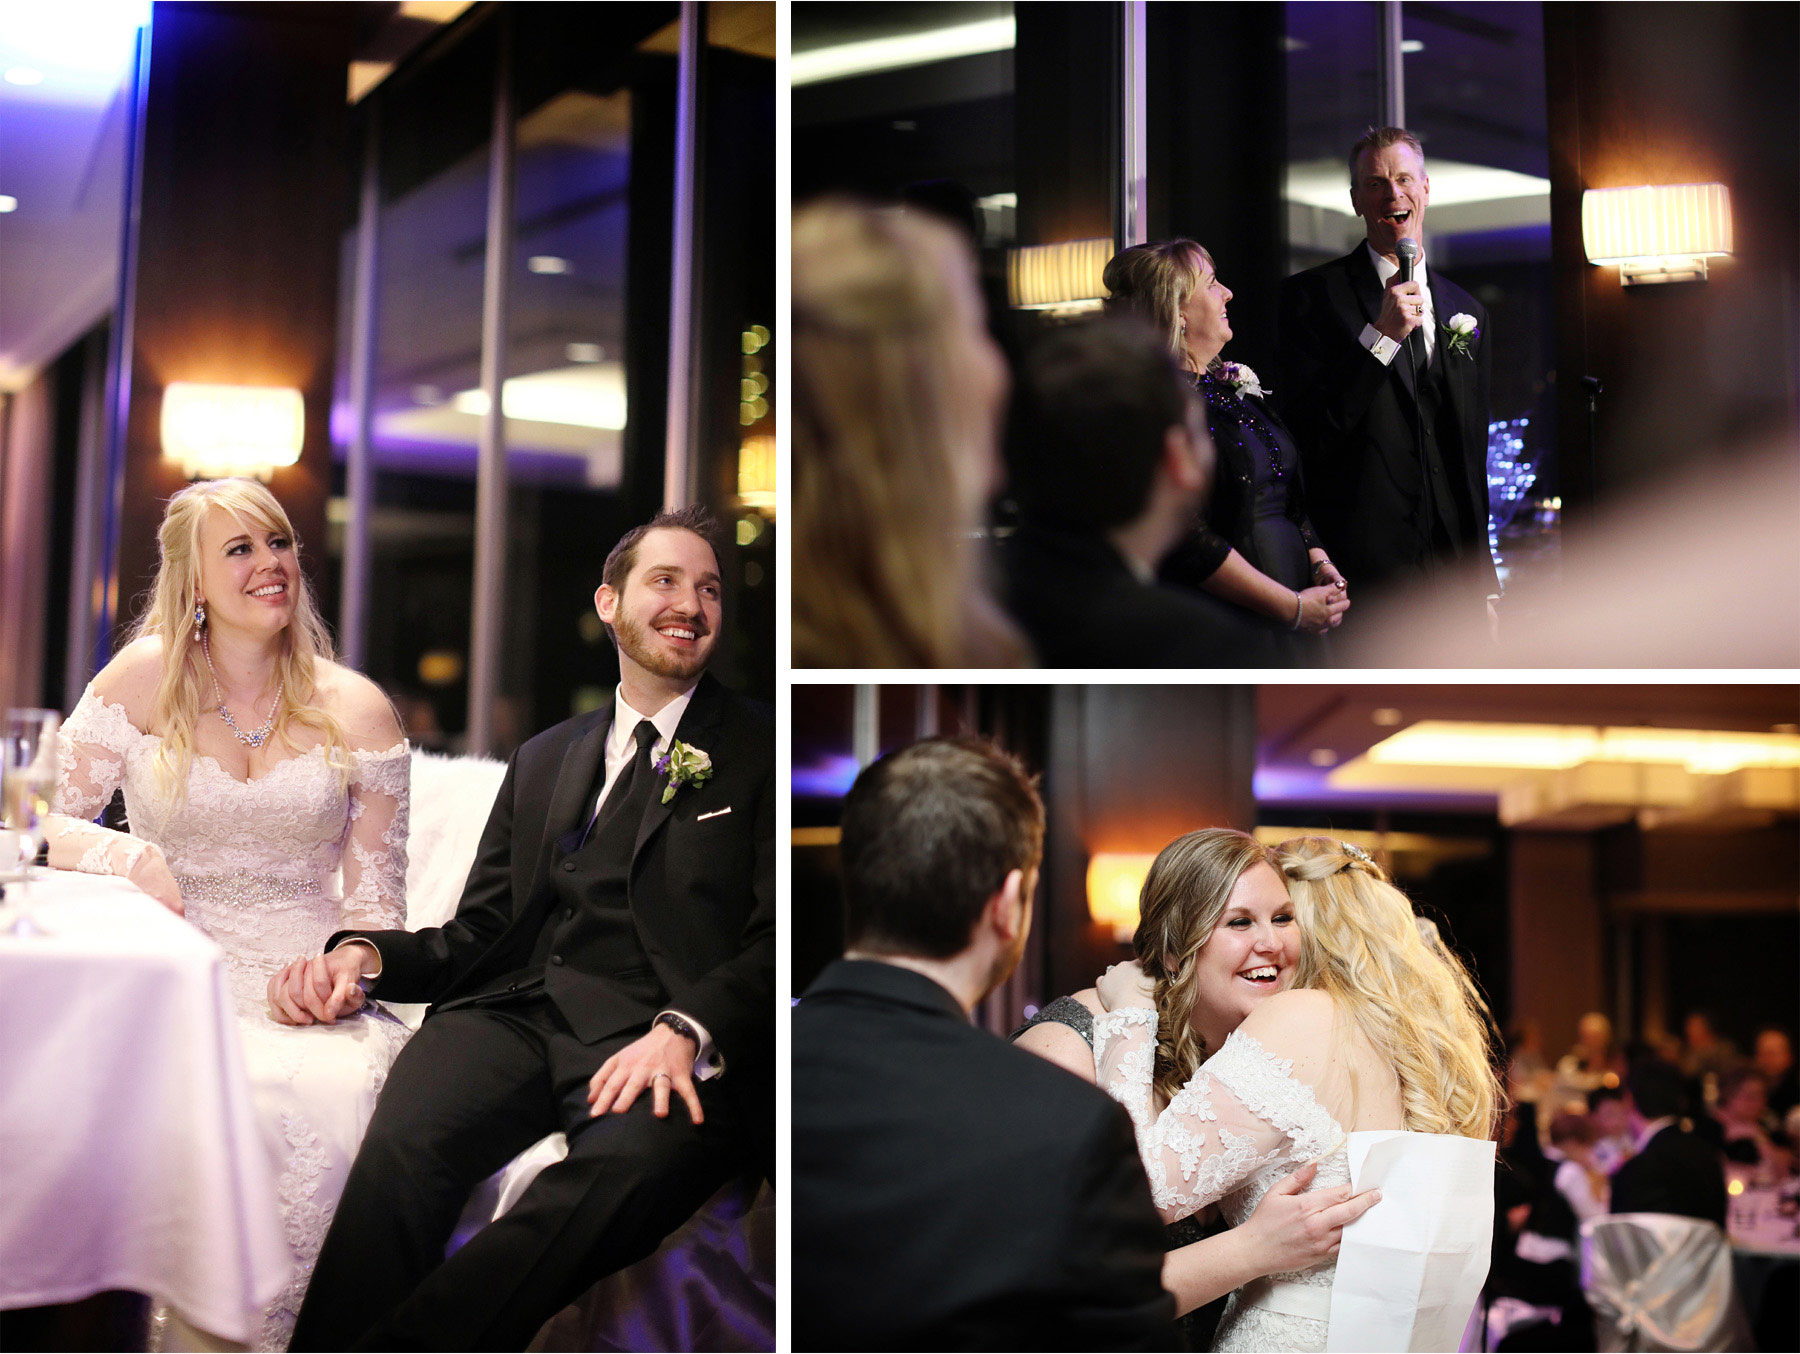 20-Minneapolis-Minnesota-Wedding-Photographer-by-Andrew-Vick-Photography-Winter-Millennium-Hotel-Reception-Bride-Groom-Speeches-Parents-Father-Mother-Bridesmaids-Jennifer-and-Phillip.jpg